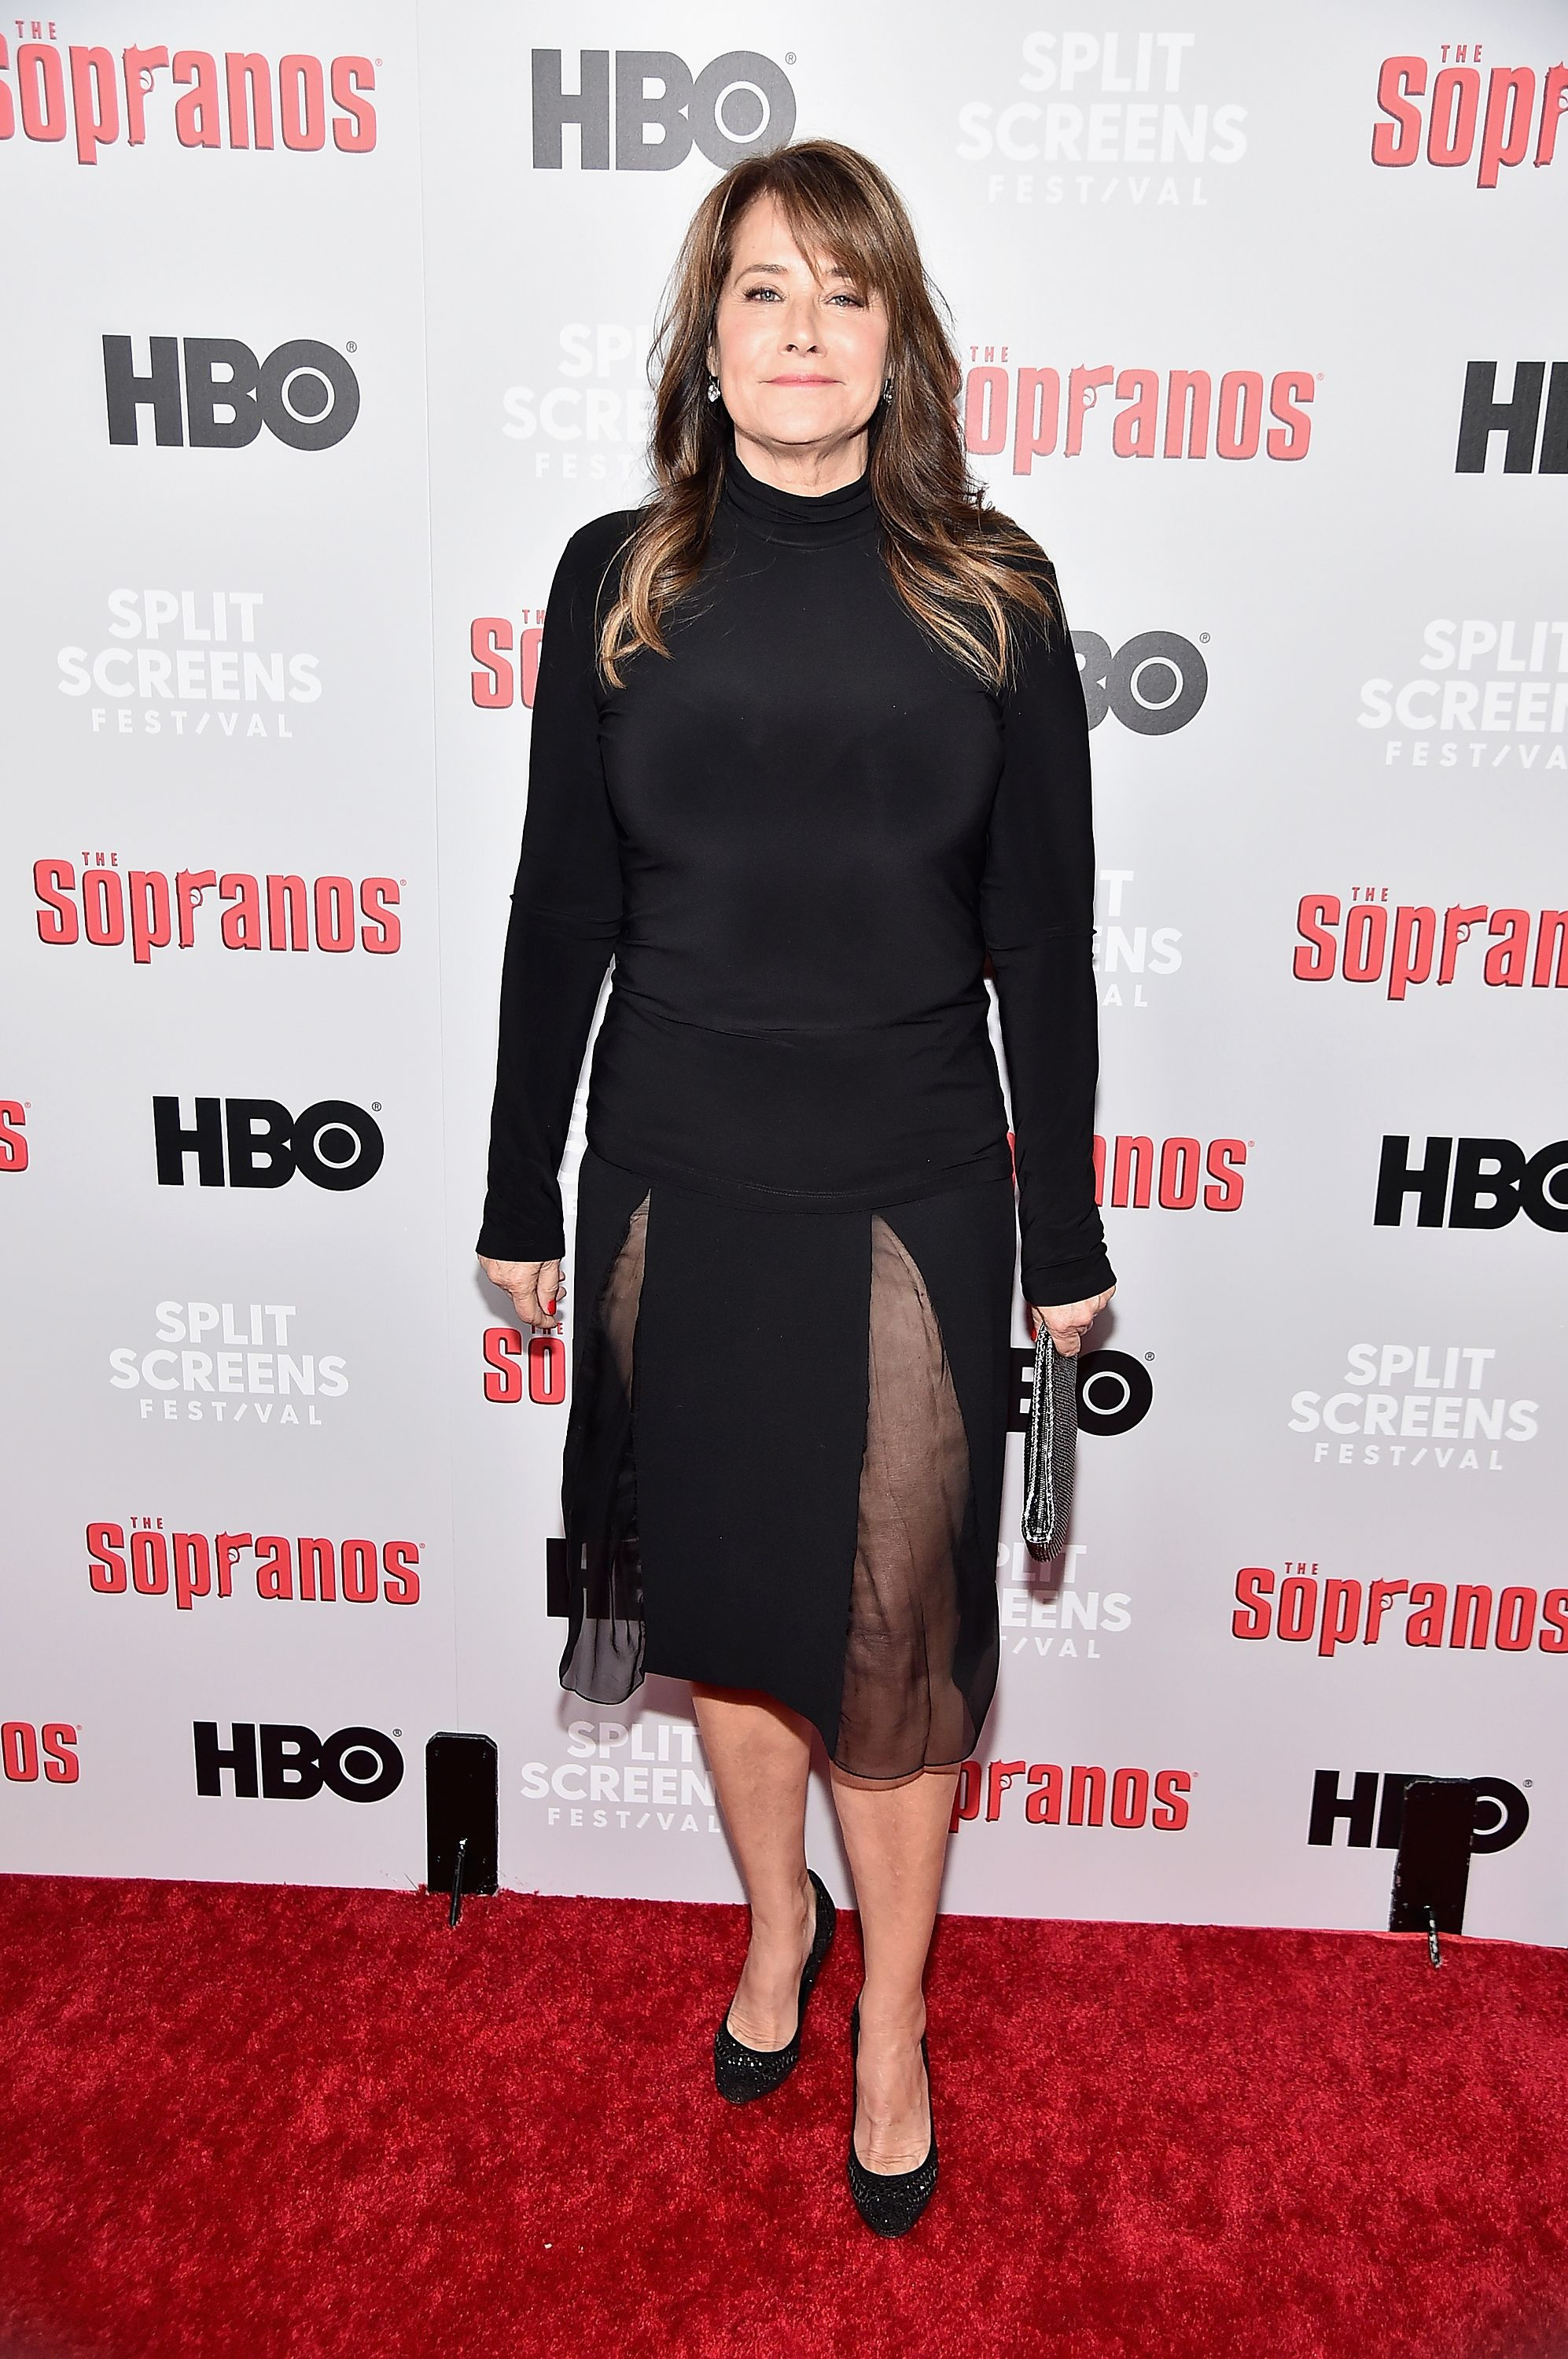 'The Sopranos' 20th Anniversary Panel Discussion